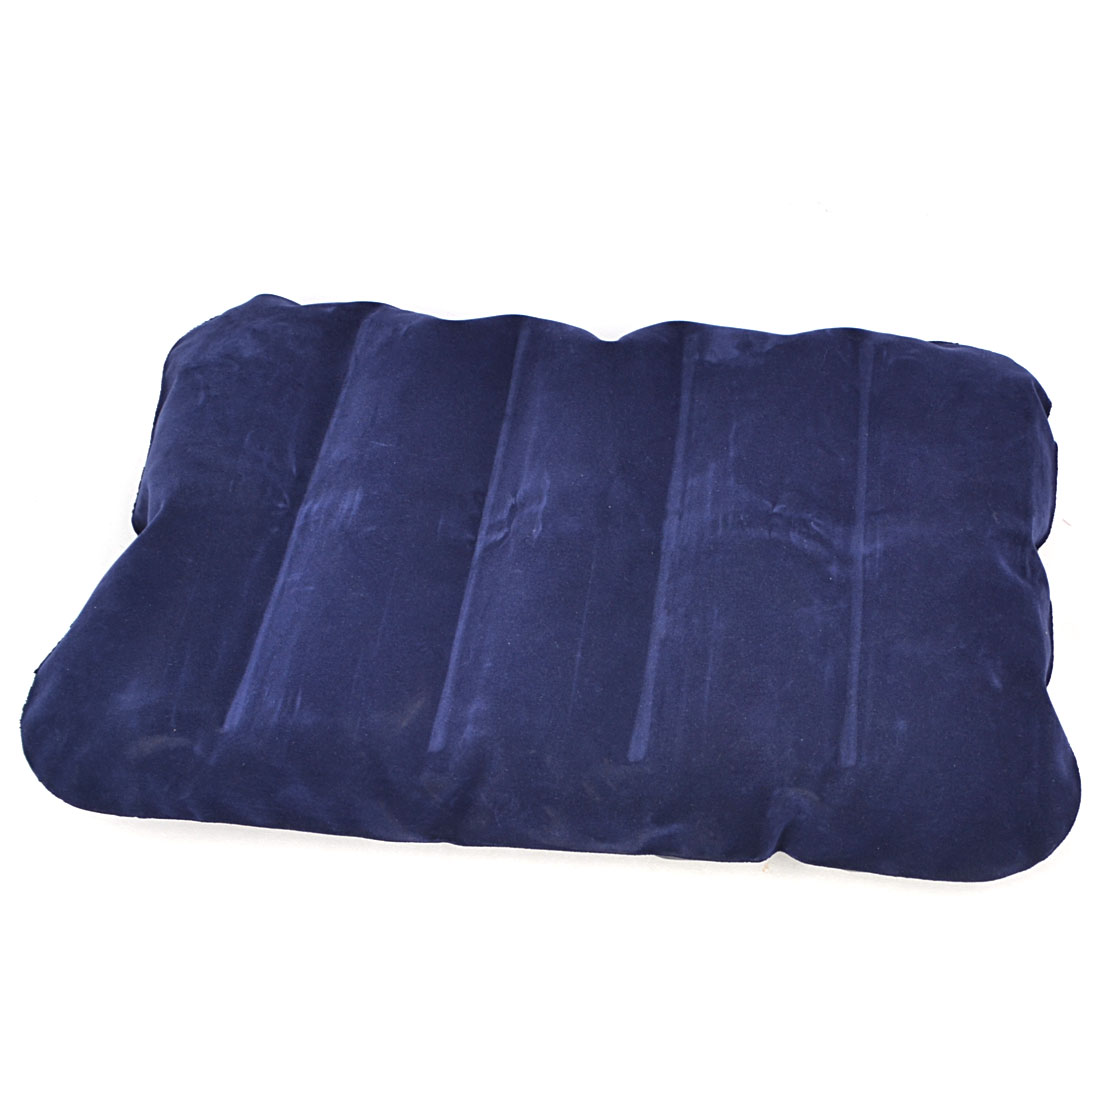 Home Royal Blue Flannel Surface Inflatable Pillow Neck Head Cushion